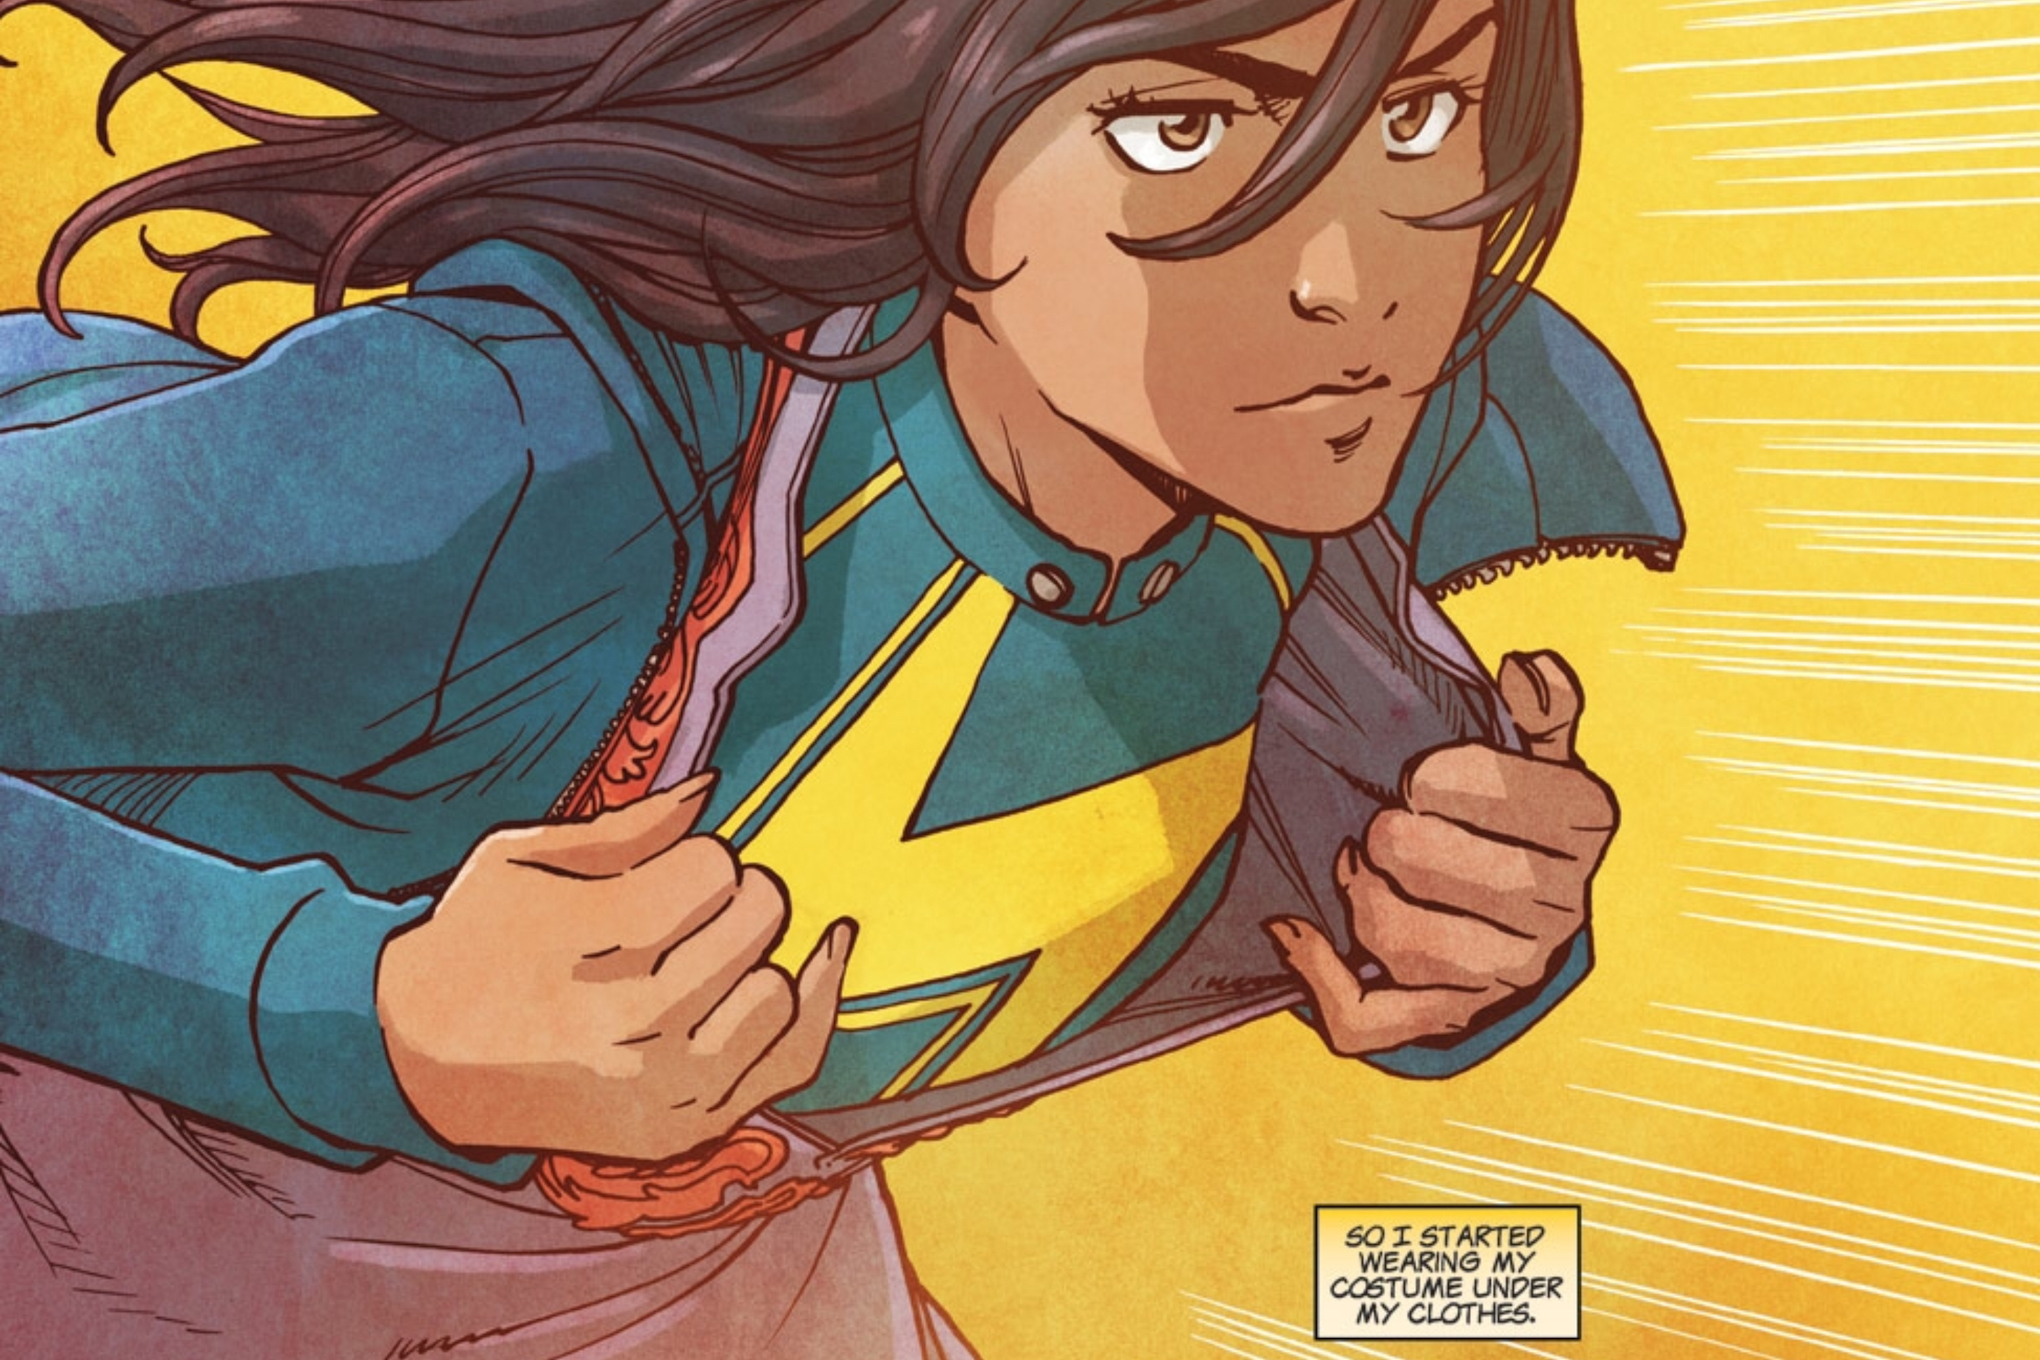 Ms. Marvel will get a live-action TV series on Disney Plus